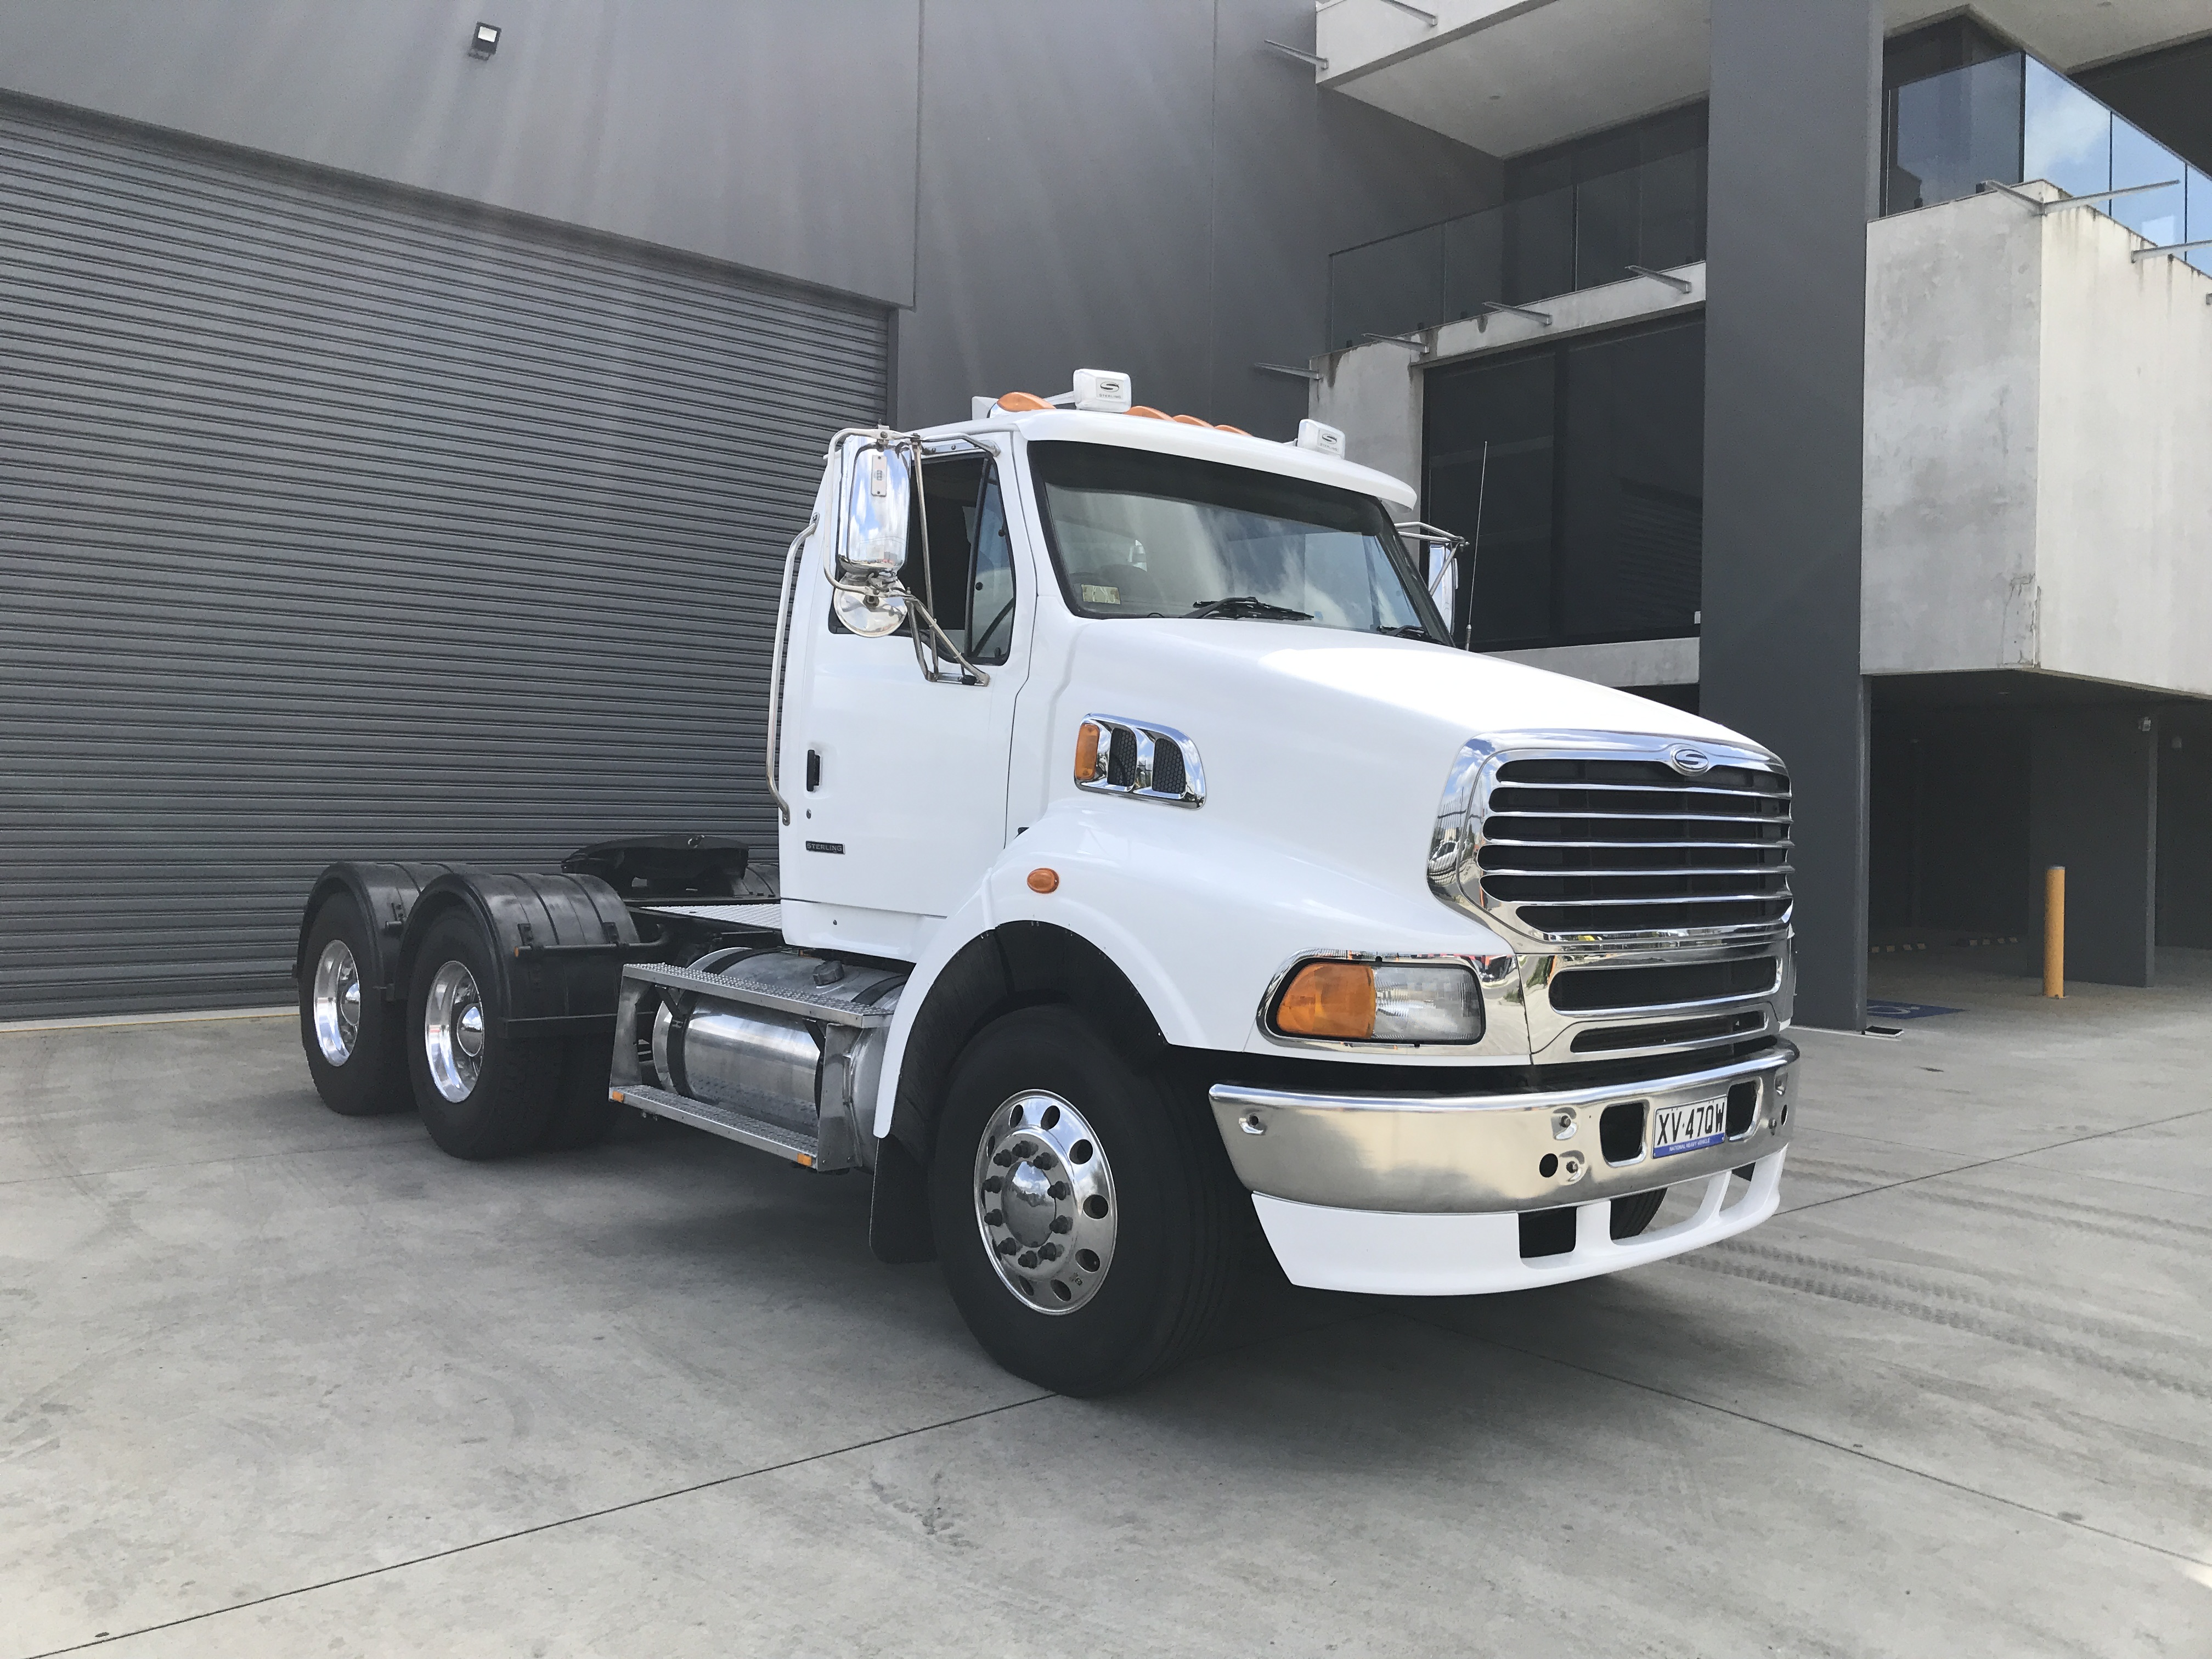 2008 Sterling LT9500 4 x 2 Prime Mover Truck